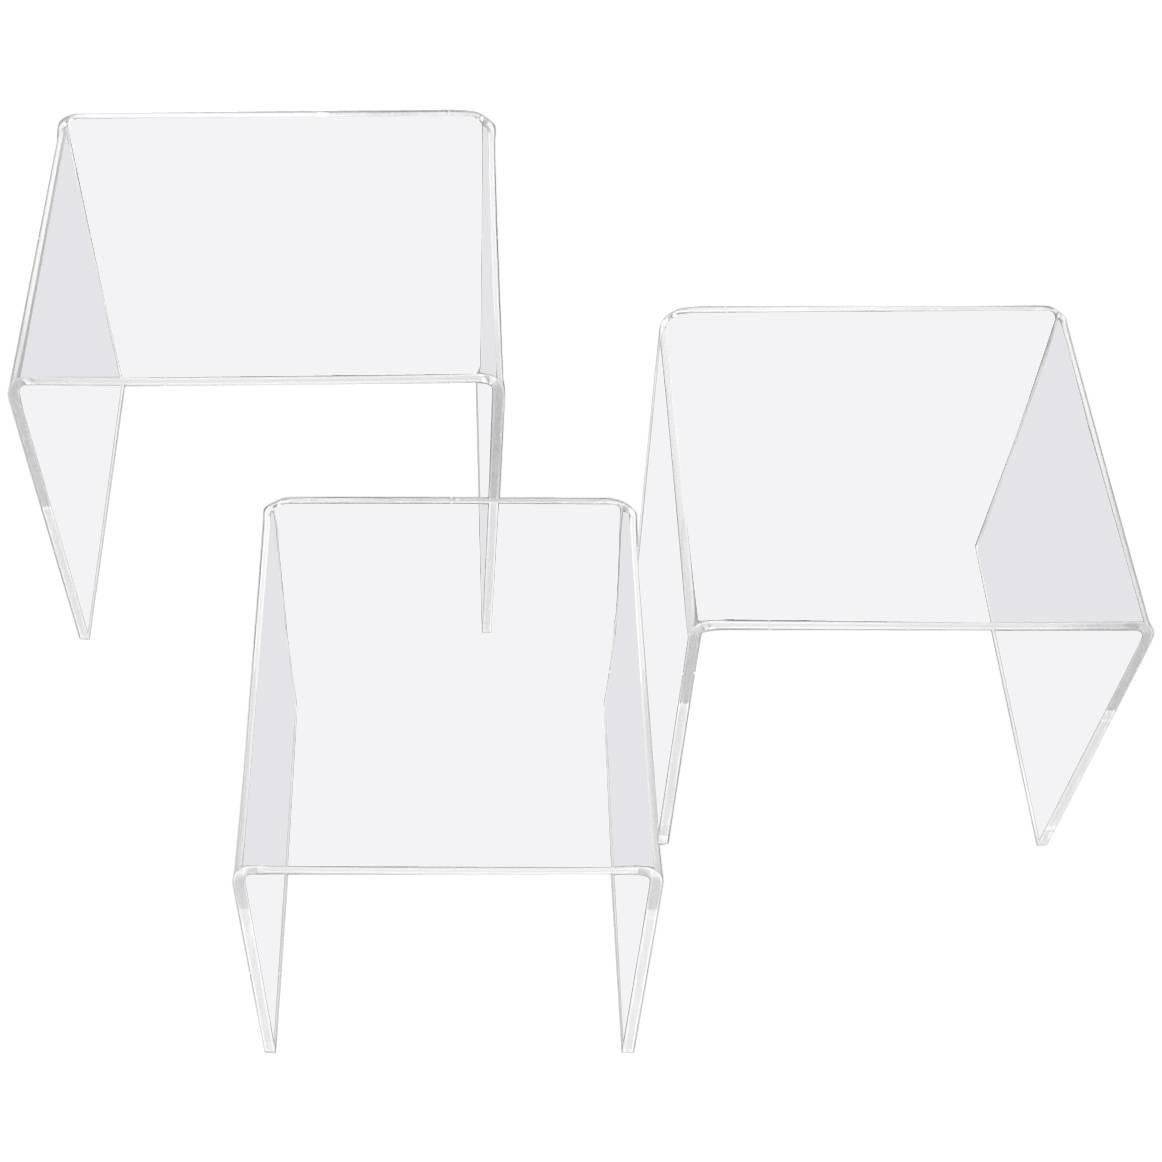 Set Of Three Italian Space Age Lucite Acrylic Nesting Tables, Clear Plastic